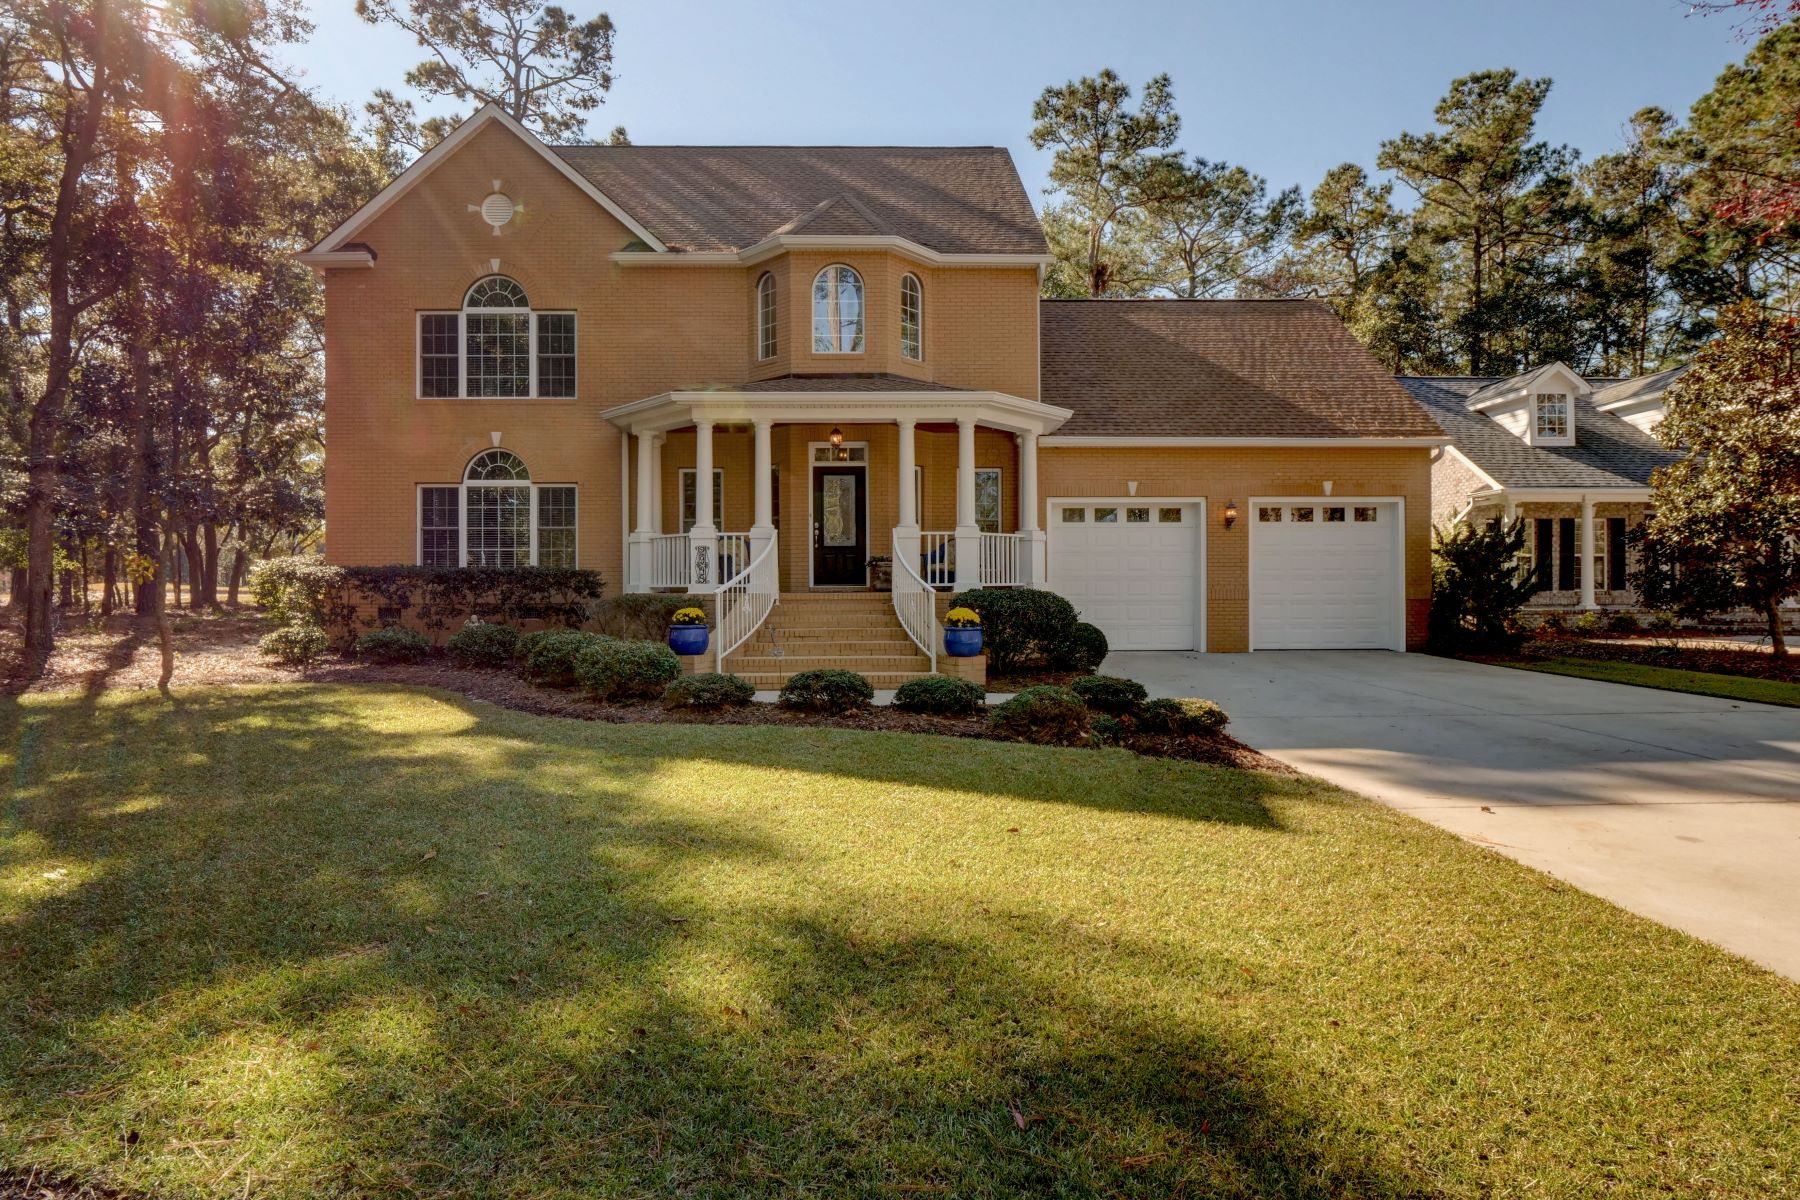 Single Family Homes for Active at Custom Built Home with Gorgeous Golf and Pond Views 2945 E Lakeview Drive SW Supply, North Carolina 28462 United States